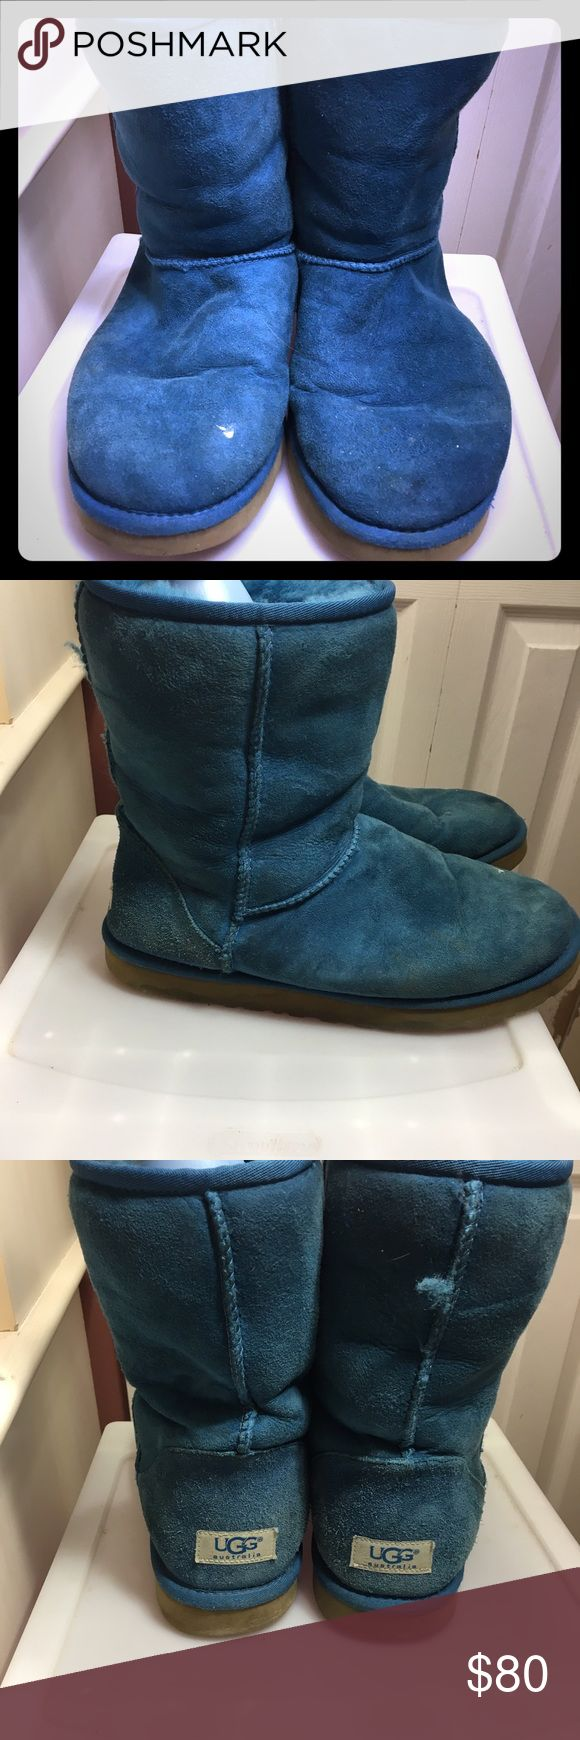 Bright Blue Ugg Boots These boots are in good condition and keep you very warm during the cold months. The bright blue brings a pop of color to your look! They are worn out but still able to be worn. UGG Shoes Winter & Rain Boots